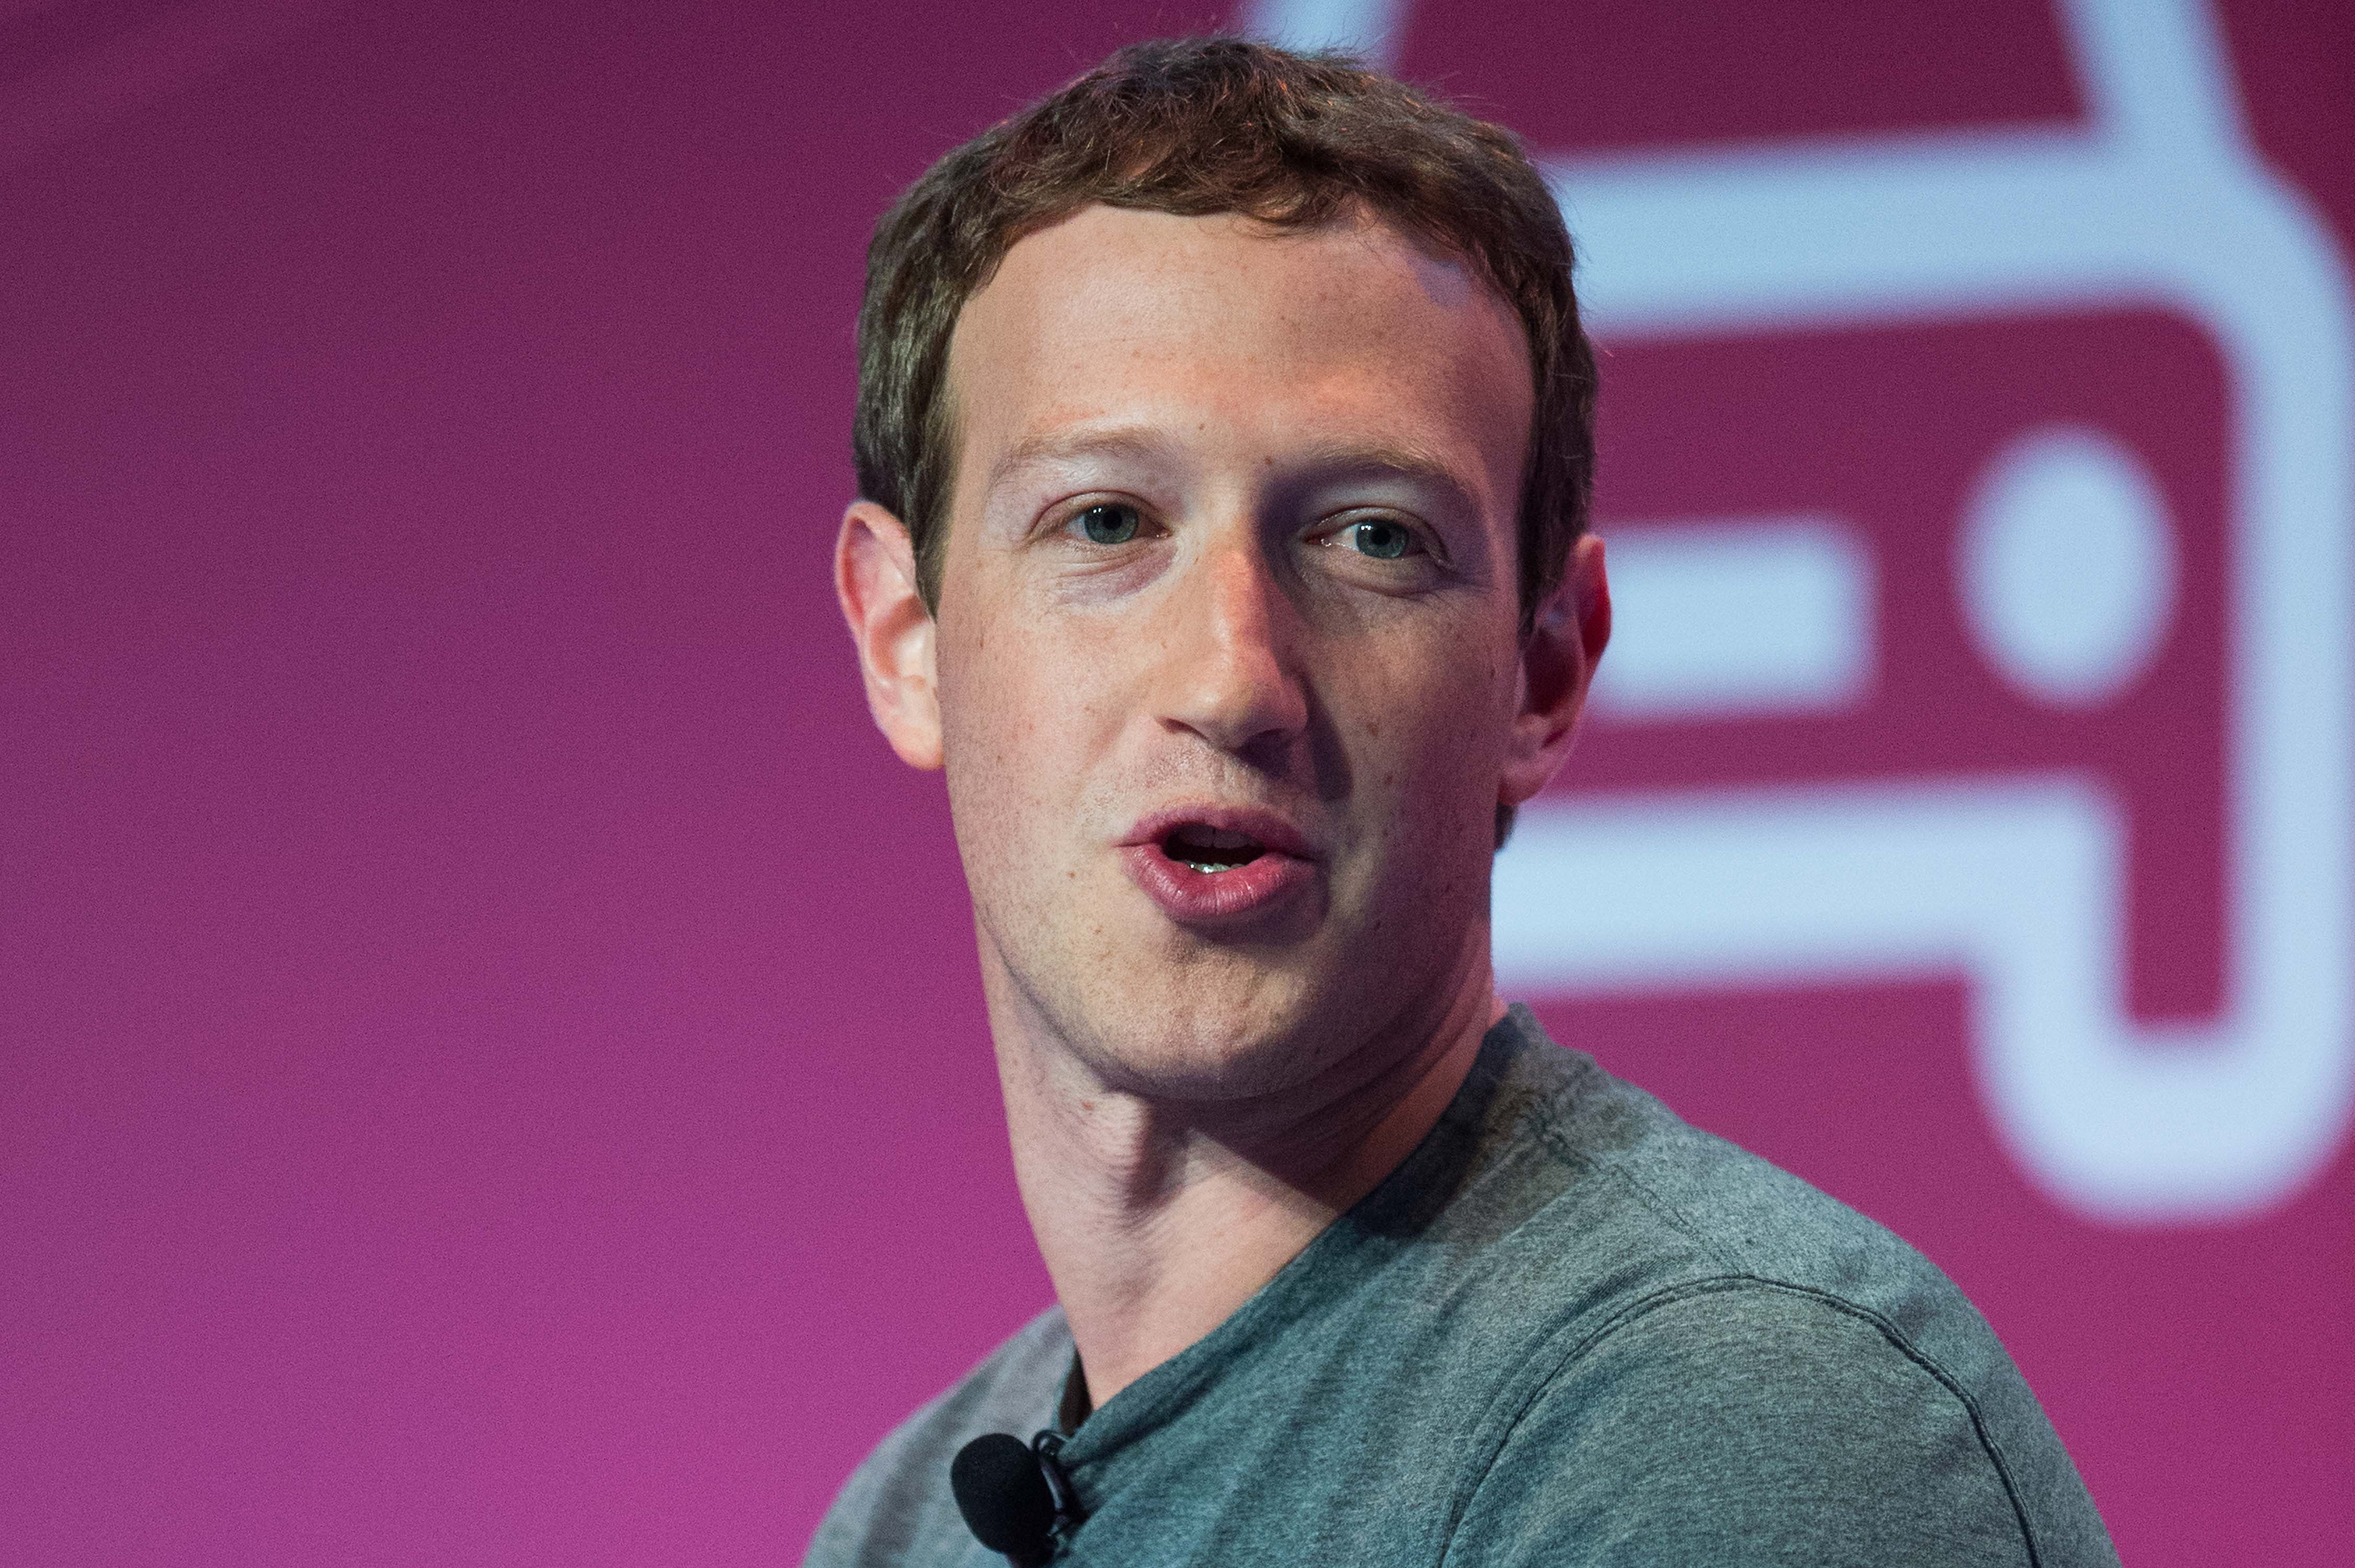 Founder and CEO of Facebook Mark Zuckerberg delivers his keynote conference on the opening day of the World Mobile Congress on Feb. 22 in Barcelona, Spain.